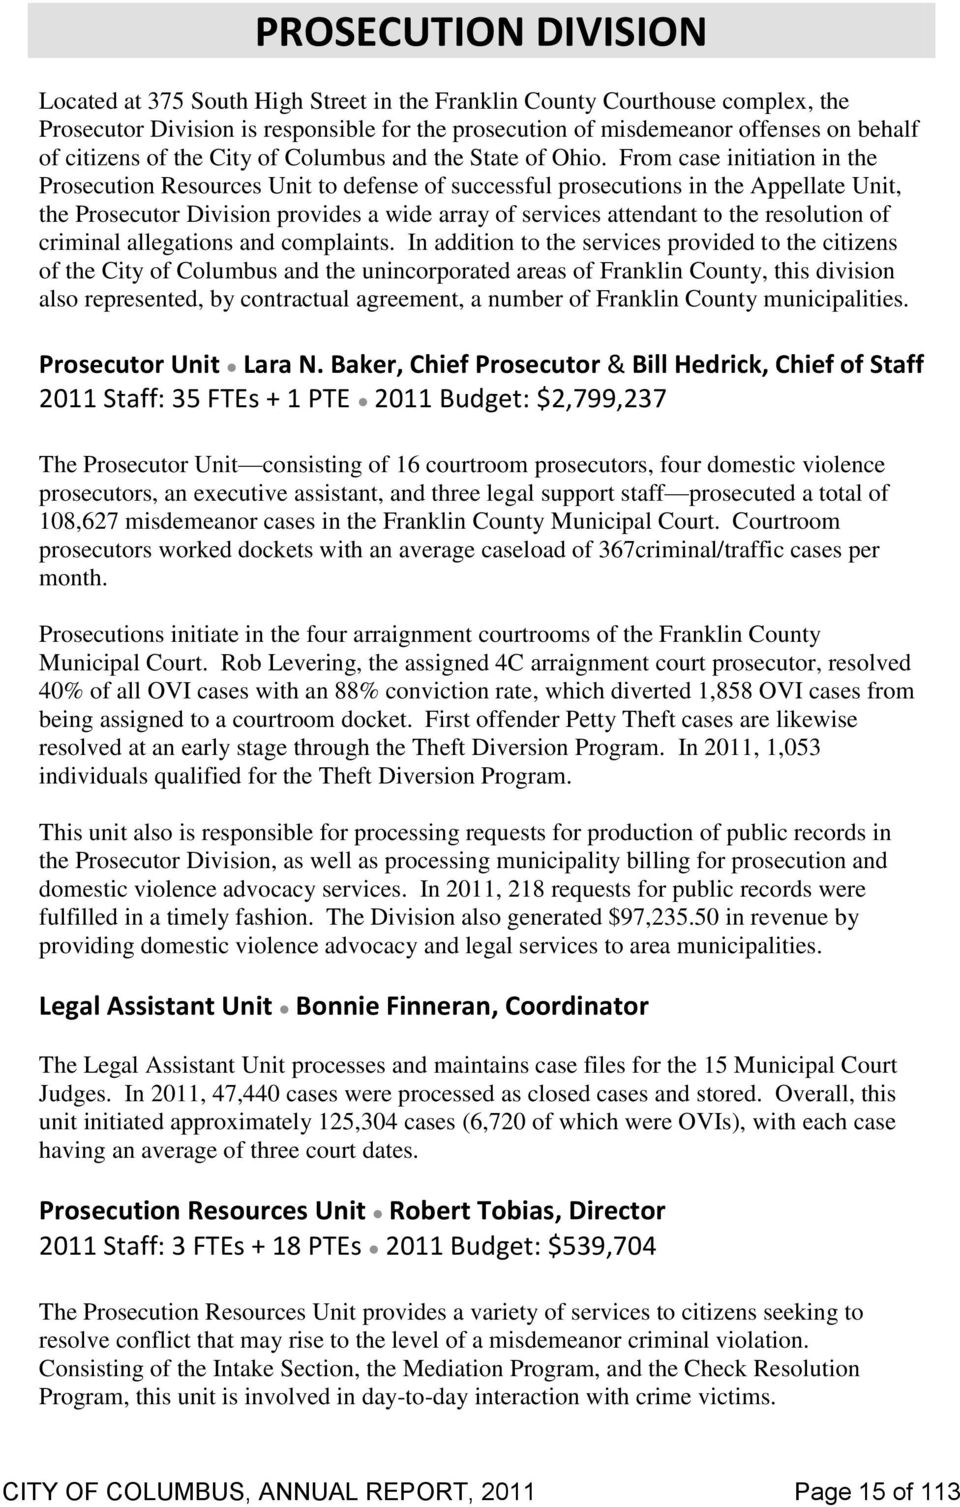 From case initiation in the Prosecution Resources Unit to defense of successful prosecutions in the Appellate Unit, the Prosecutor Division provides a wide array of services attendant to the